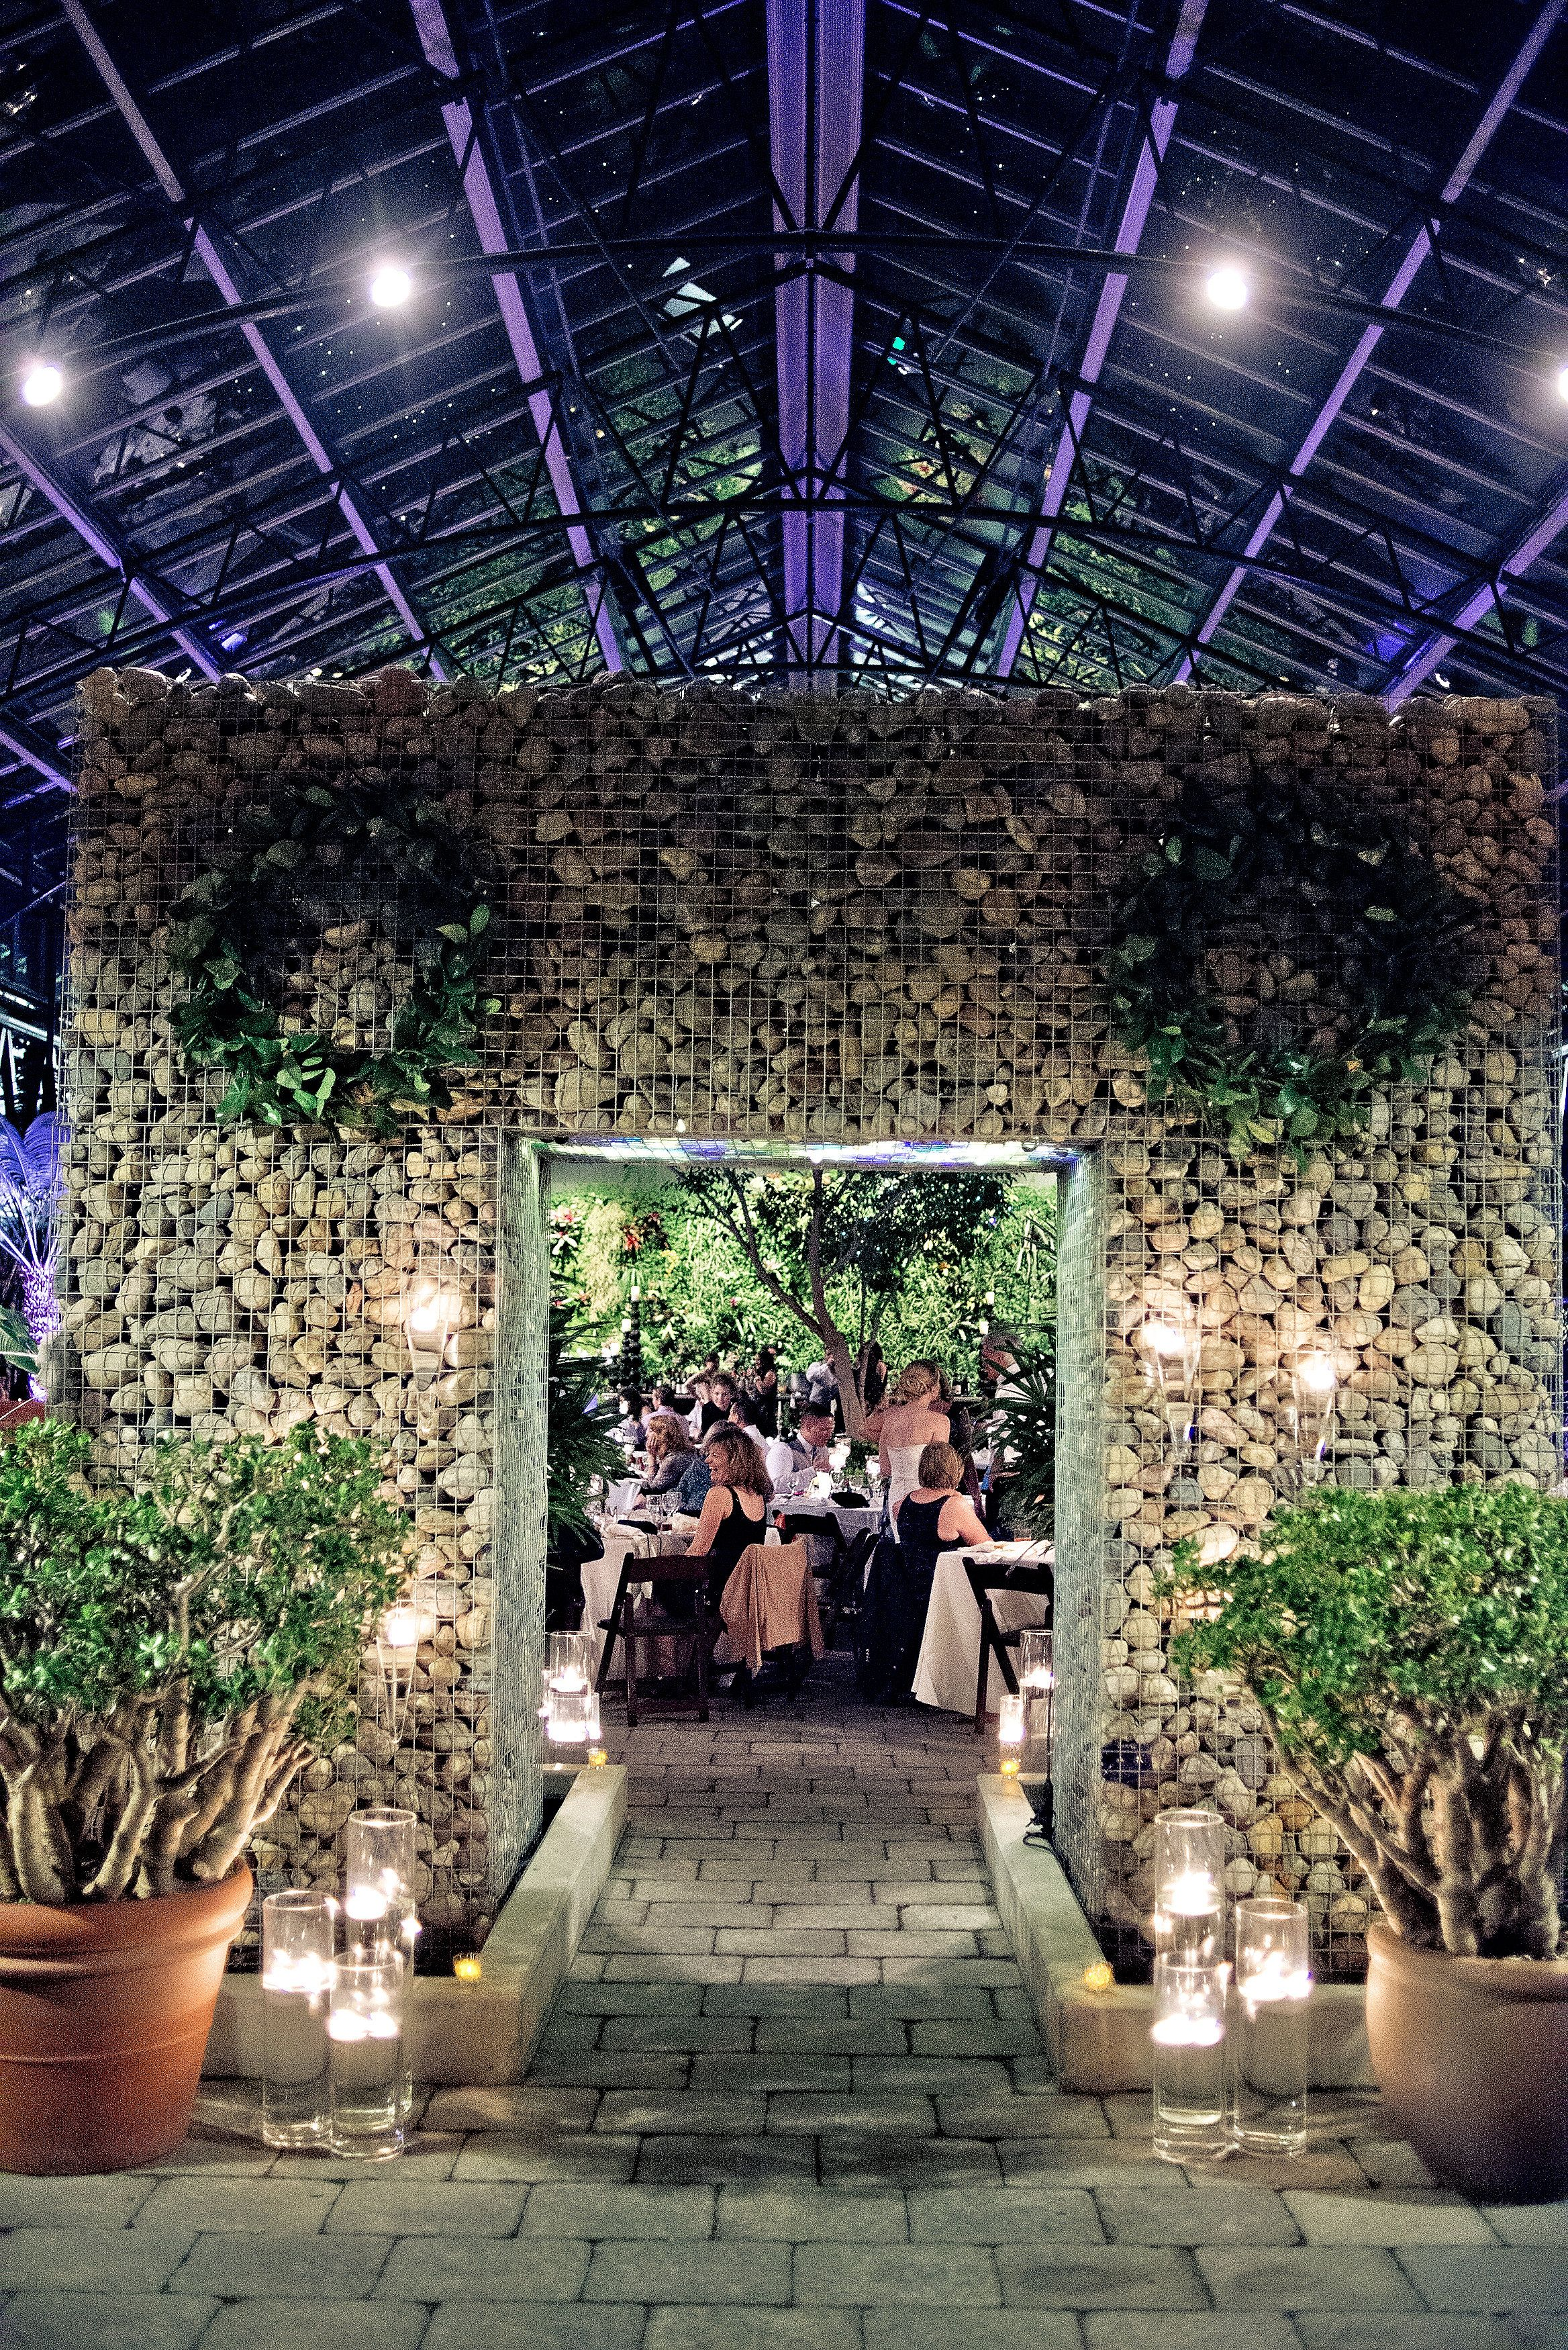 The Best Venue For A Winter Wedding Reception Or Ceremony In Michigan Botanical Garden Setting West Bloomfield Suburban Detroit